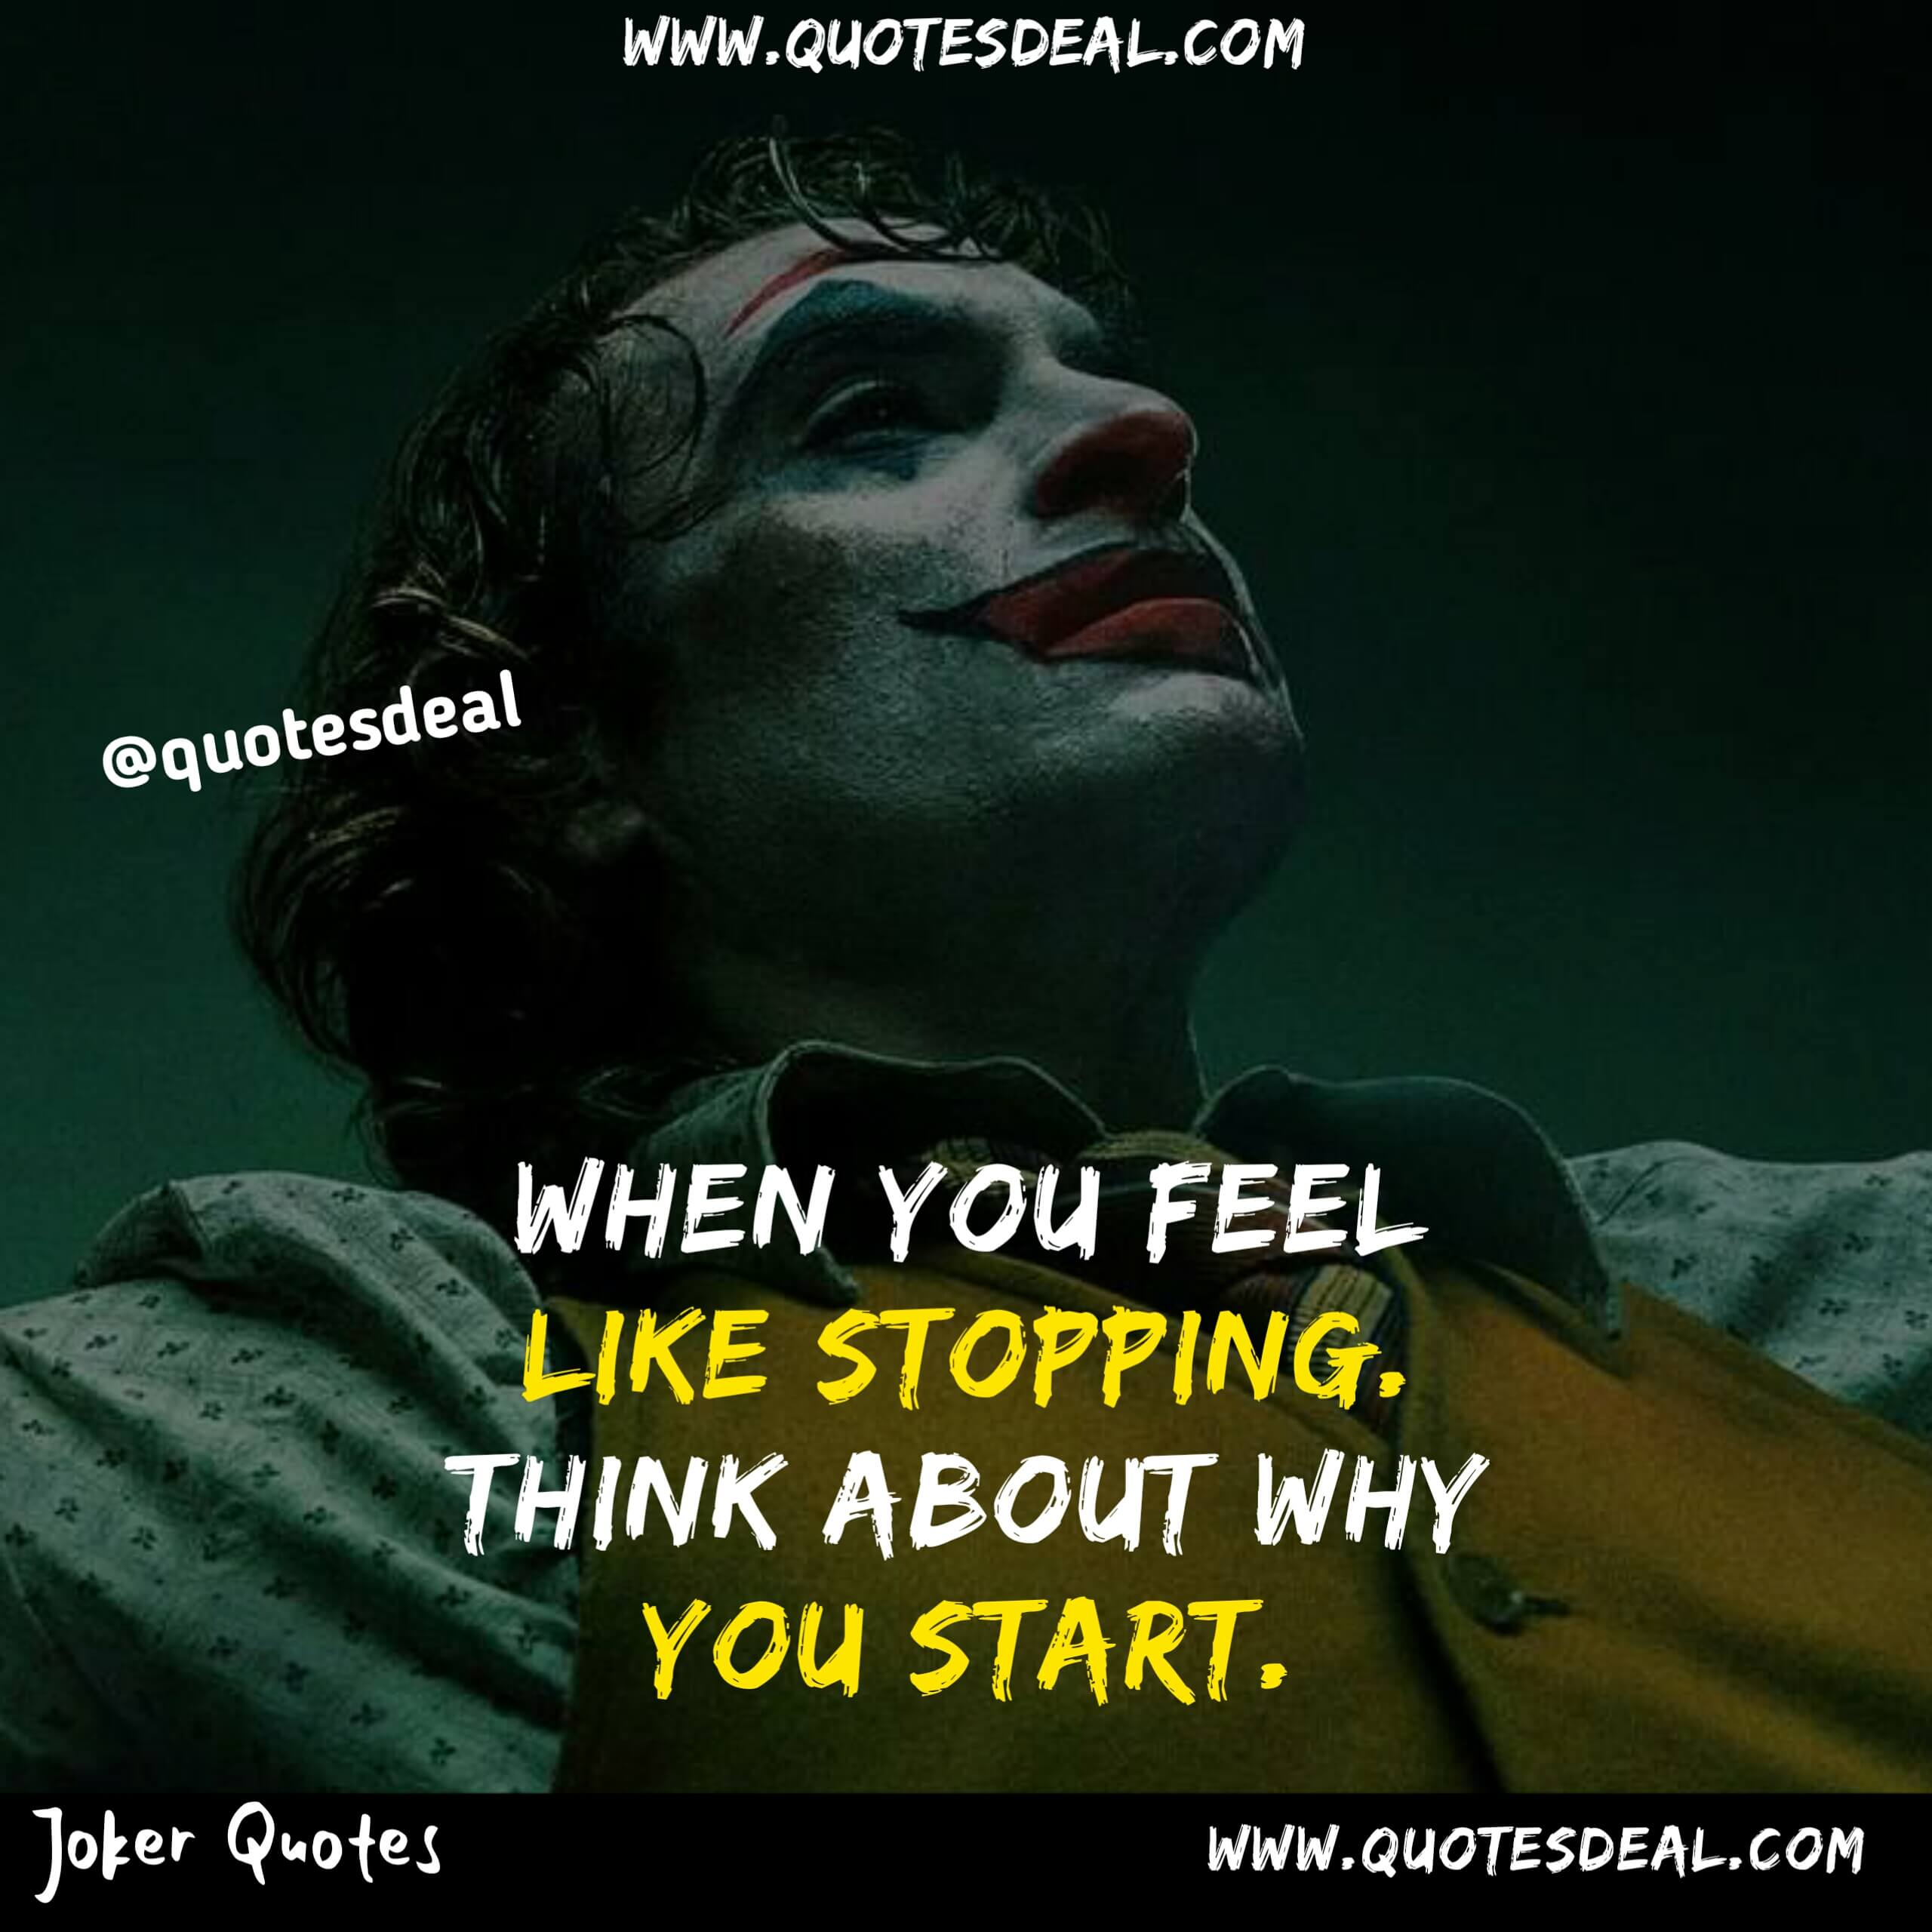 When you feel like stopping